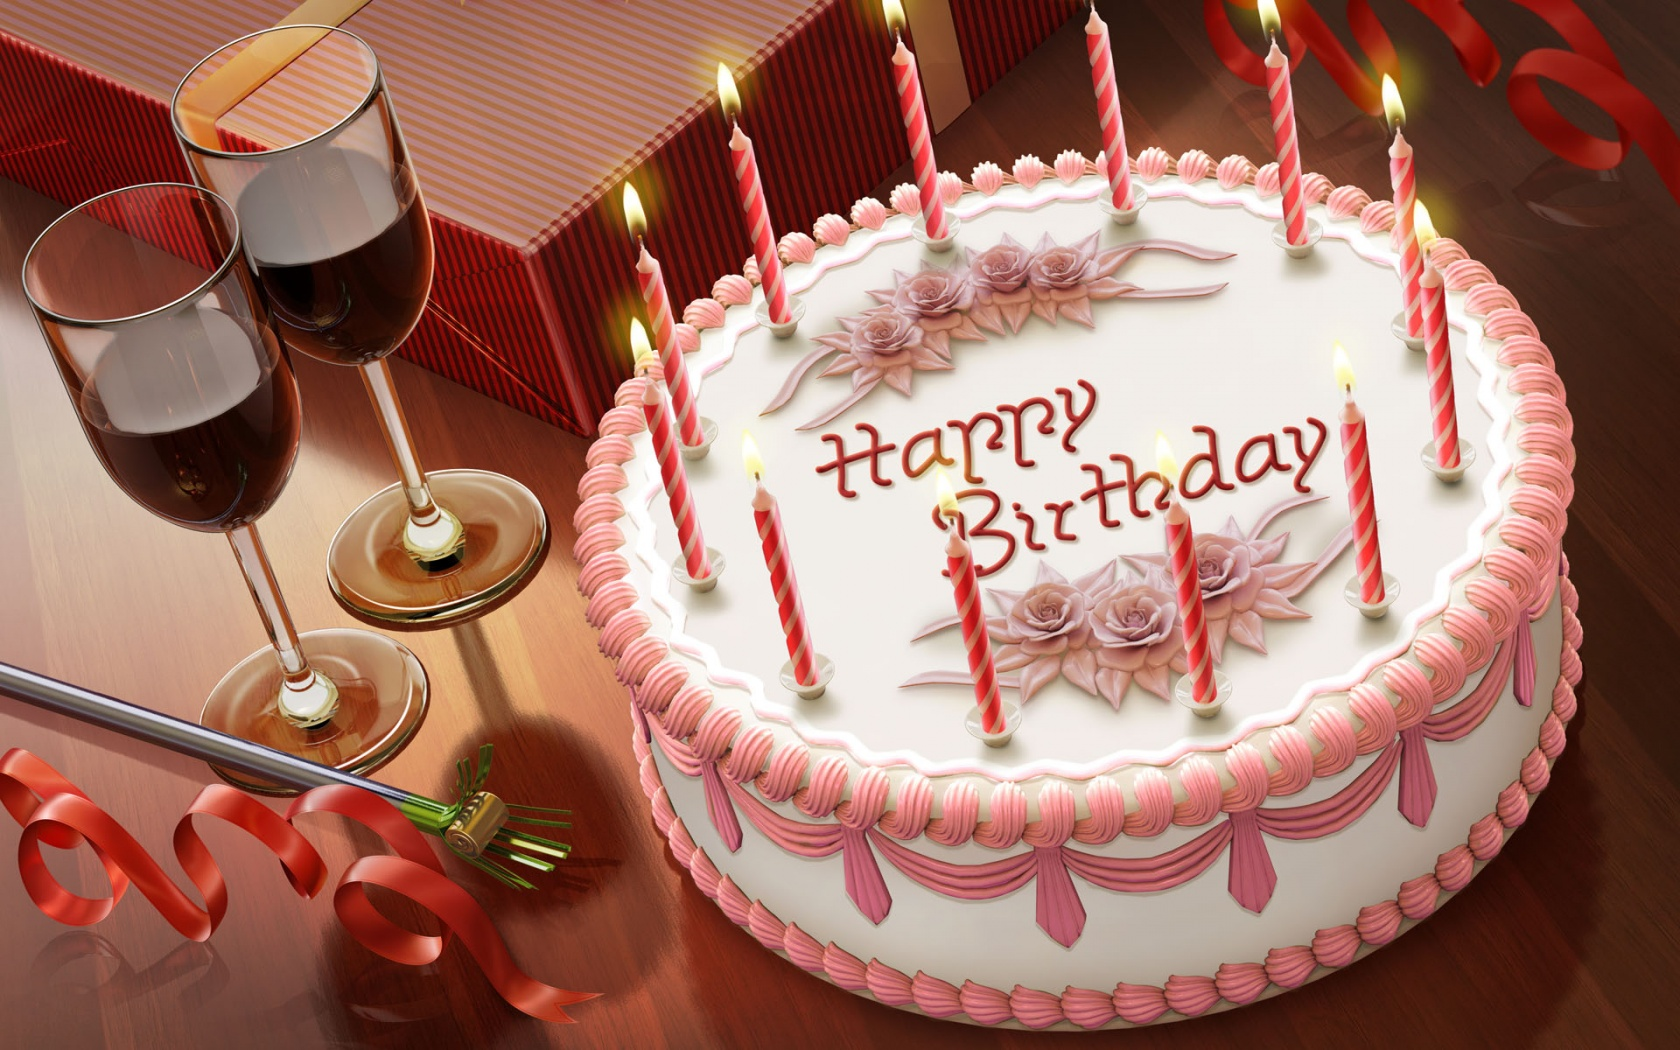 Birthday Wallpapers Free Download Birthday Desktop Background 13 HD Wallpapers